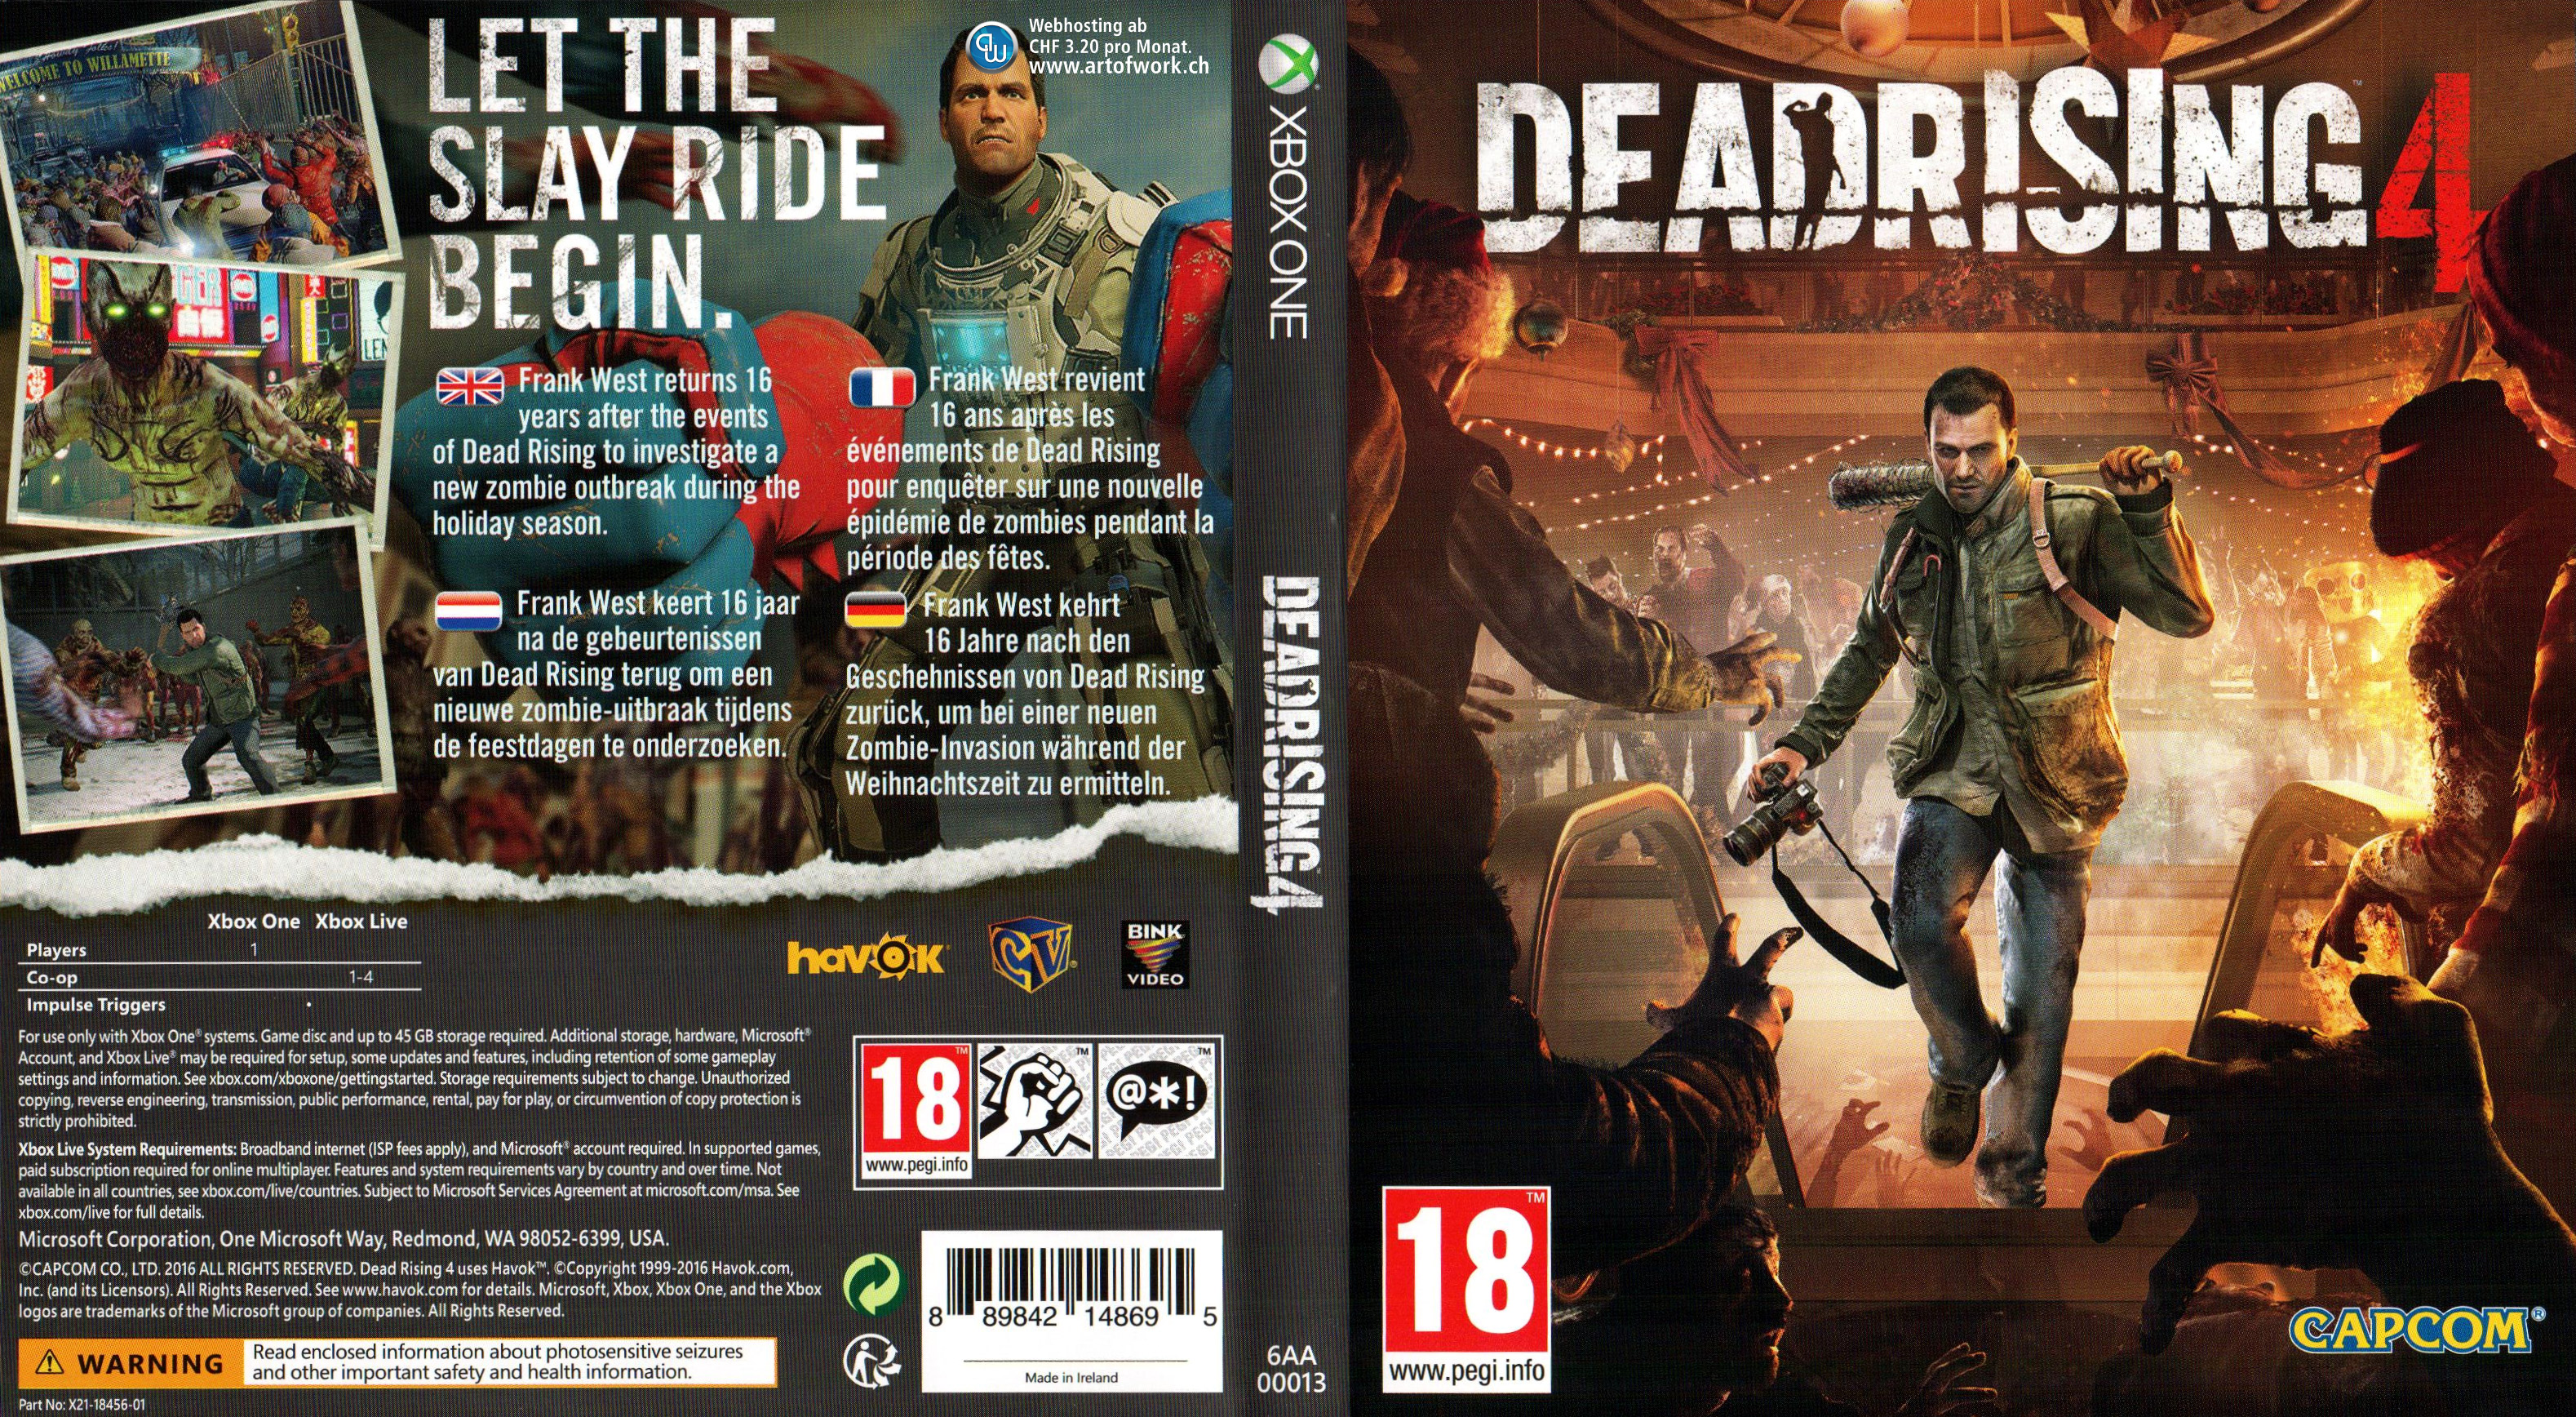 Book Cover Pictures Xbox One : Dead rising xbox one cover microsoft capcom german